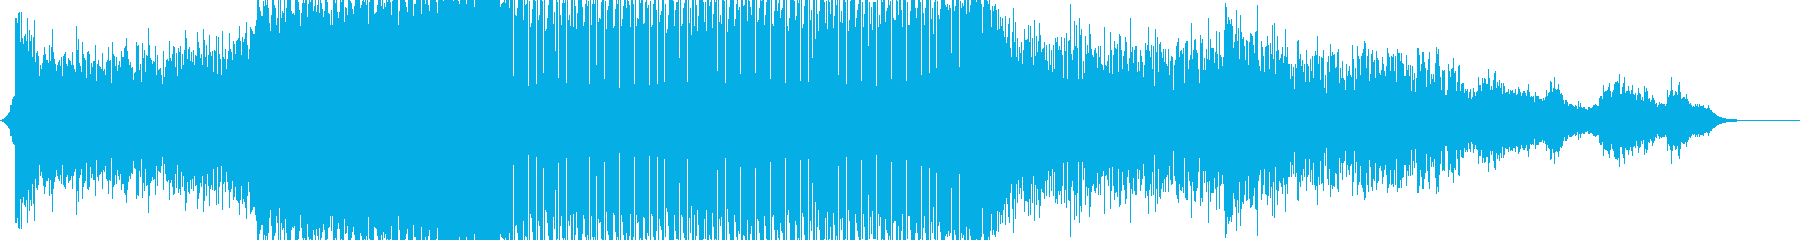 A tough EDM for video and commercials's reproduced waveform